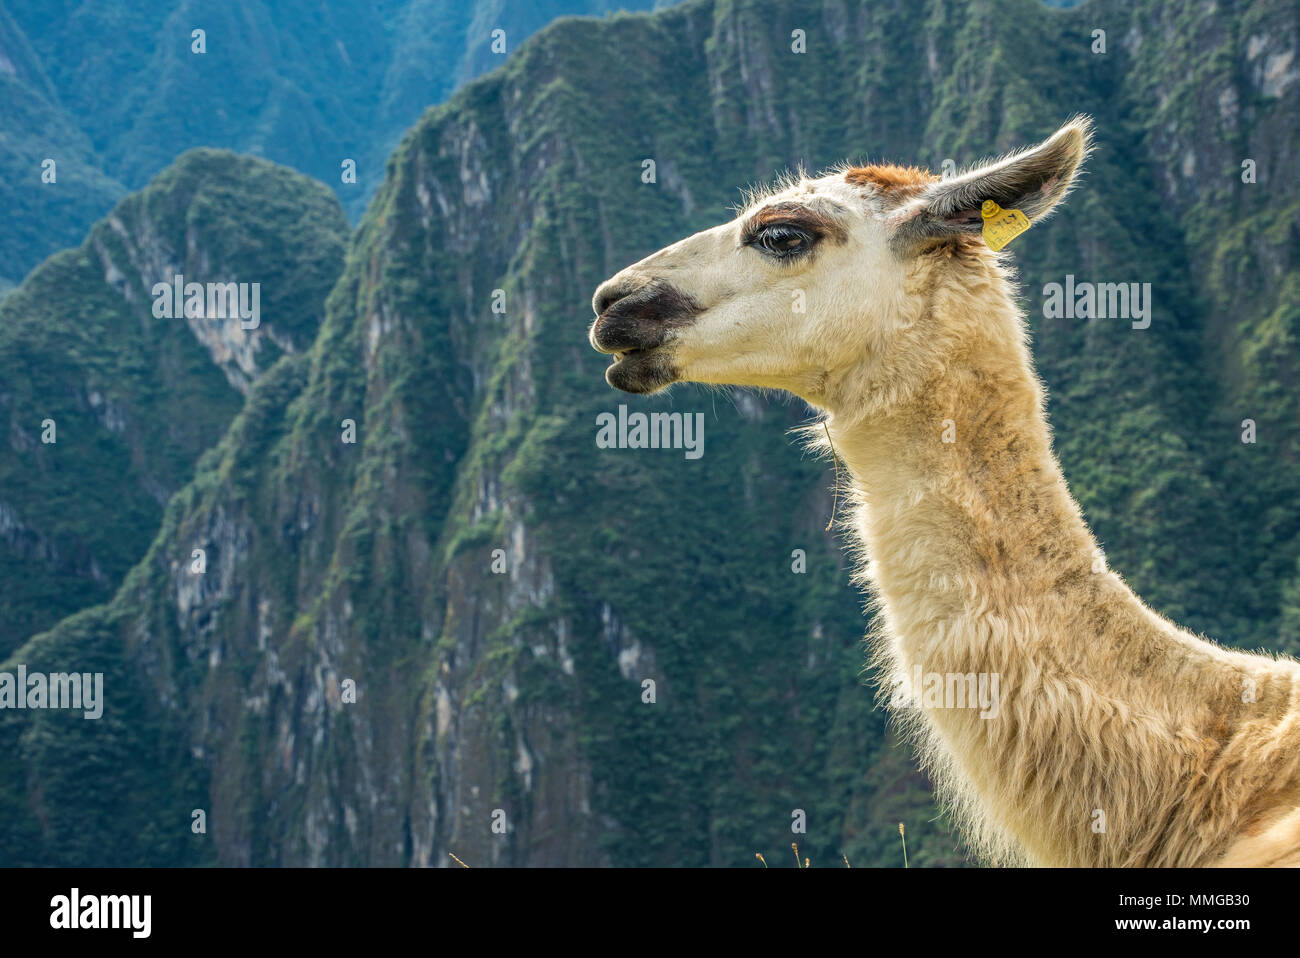 Llama in Machu Picchu with beautiful landscape behind - Stock Image